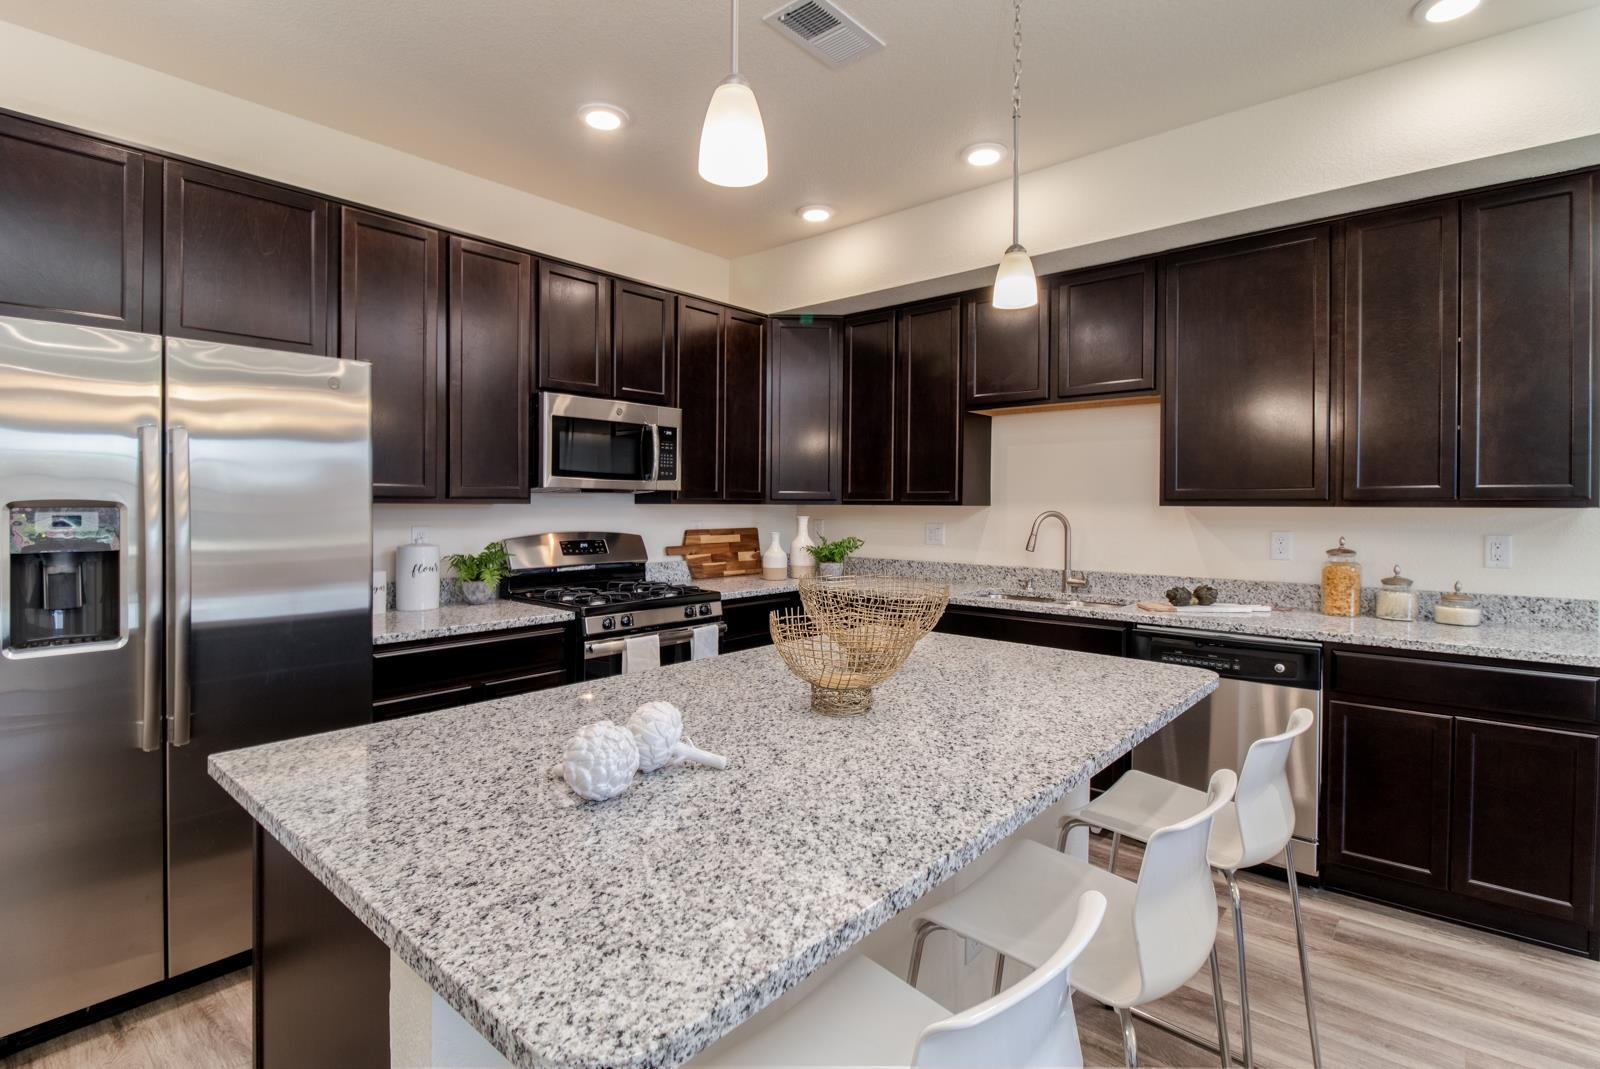 Kitchen featured in the Mountain Stream By BLVDWAY Communities in Denver, CO